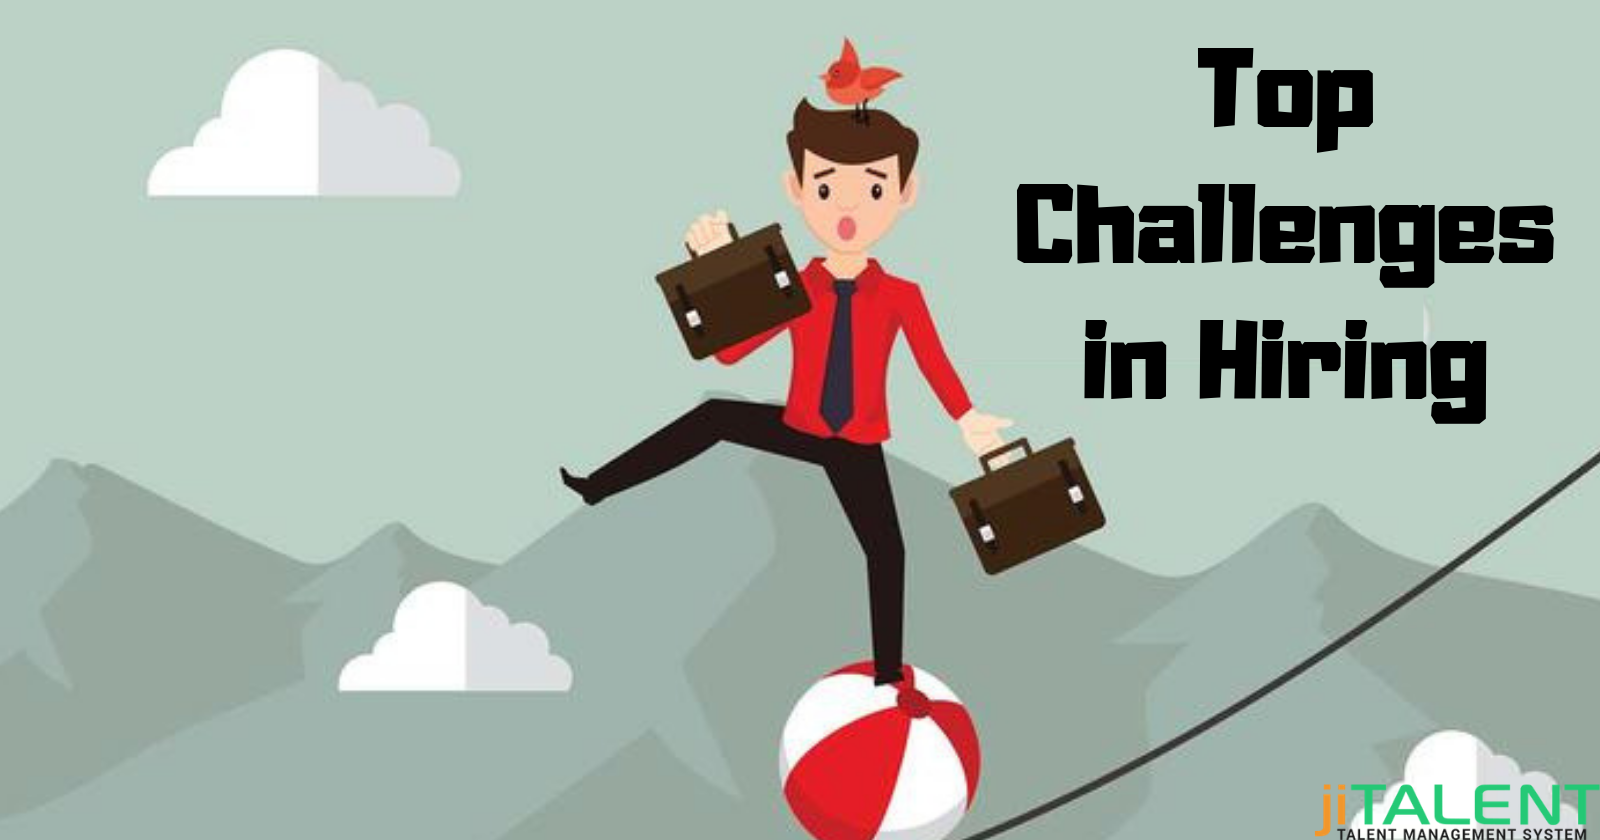 Top Challenges Of Talent Management System